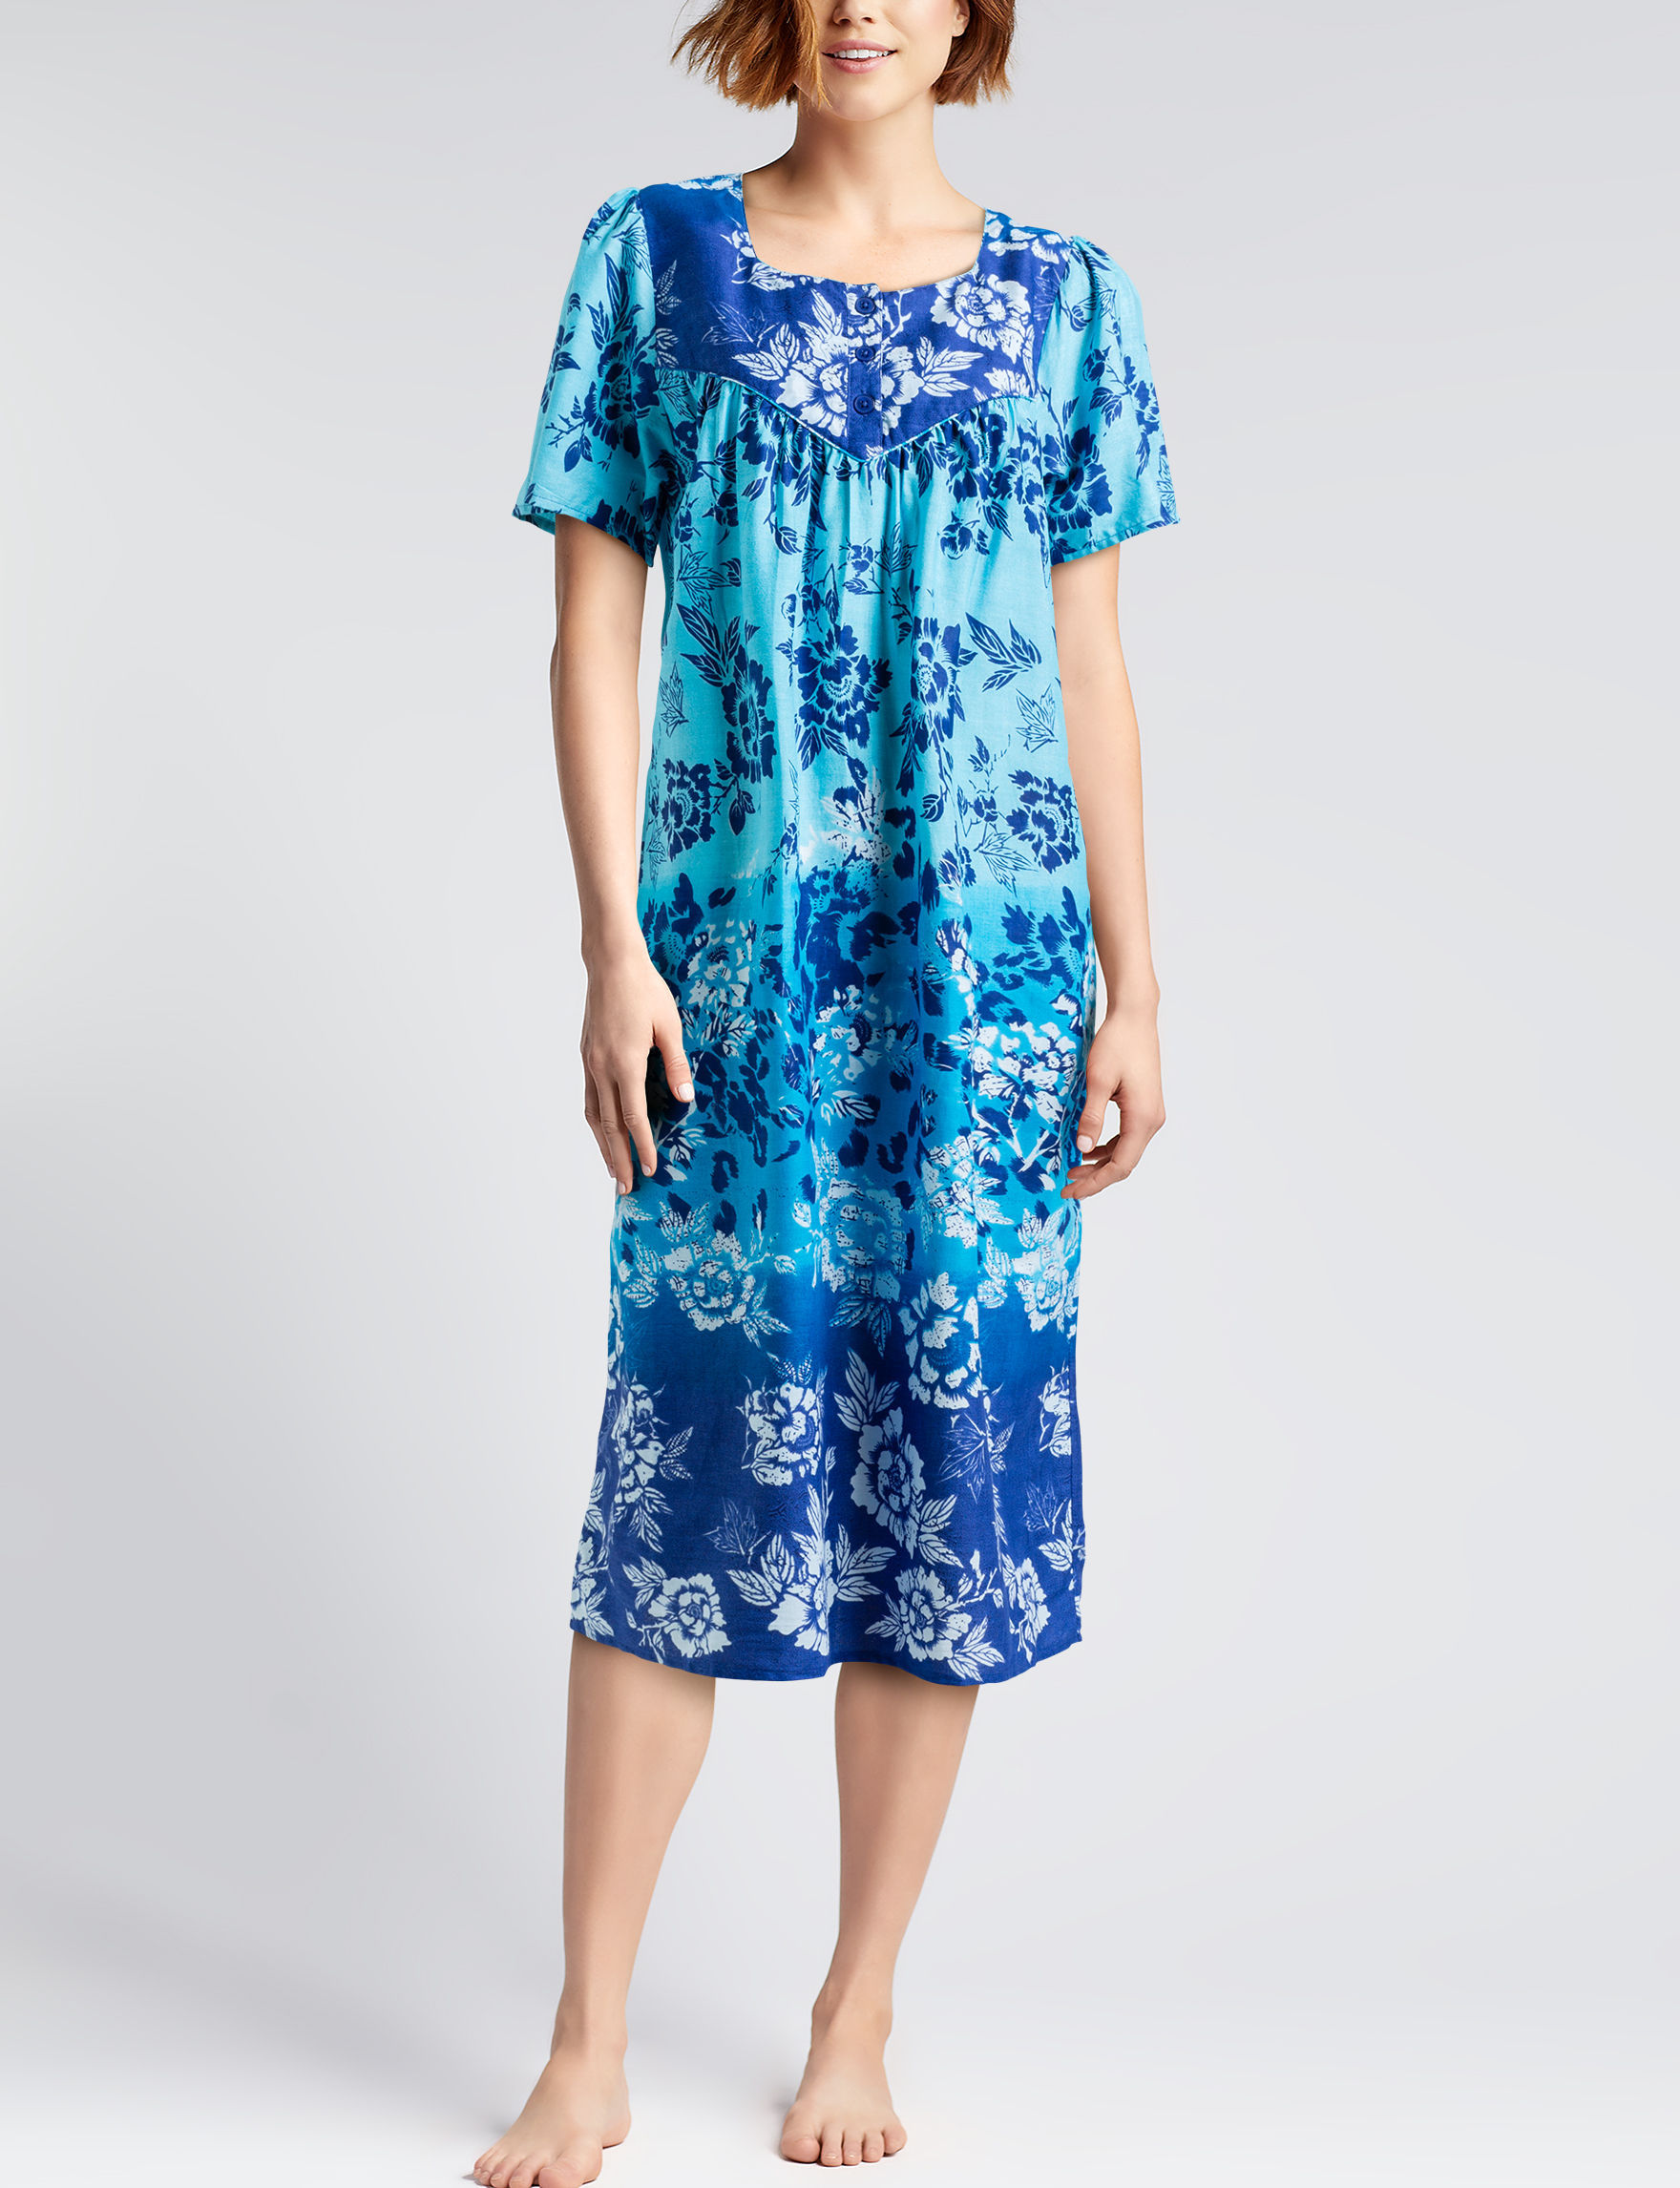 Loungees Turquoise House Dresses